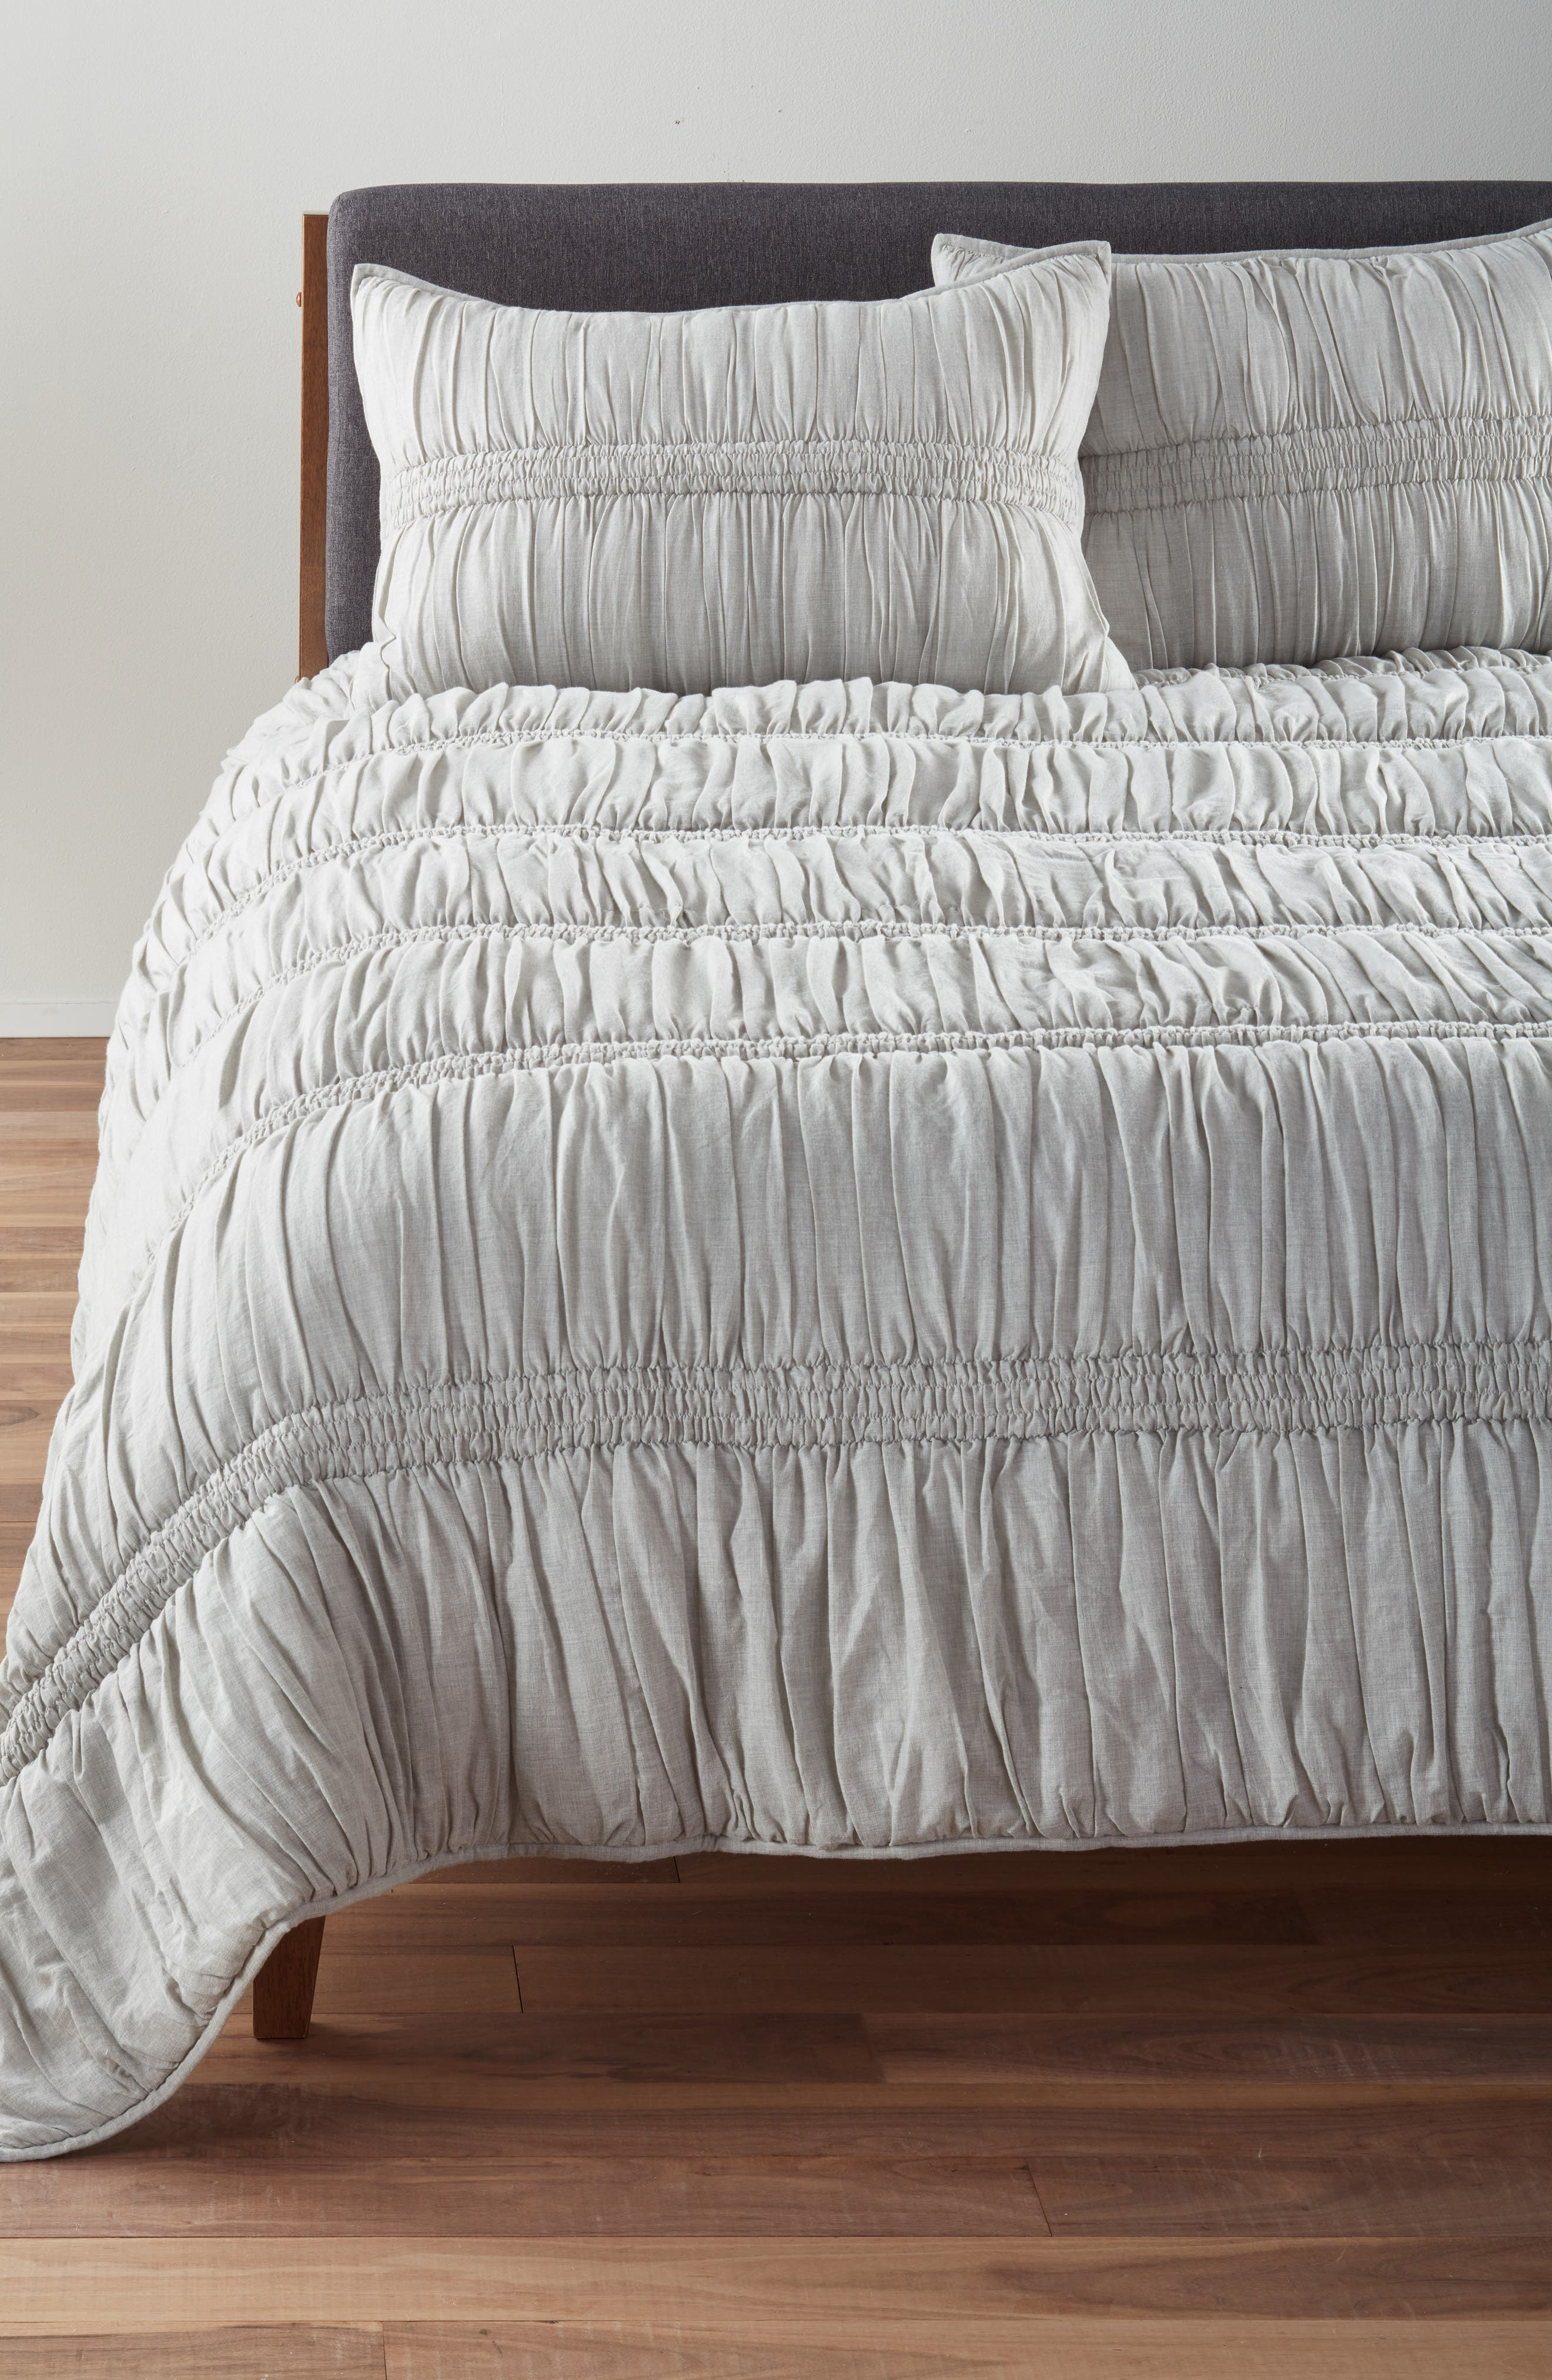 Heathered Ruched Comforter,                         Main,                         color, 020